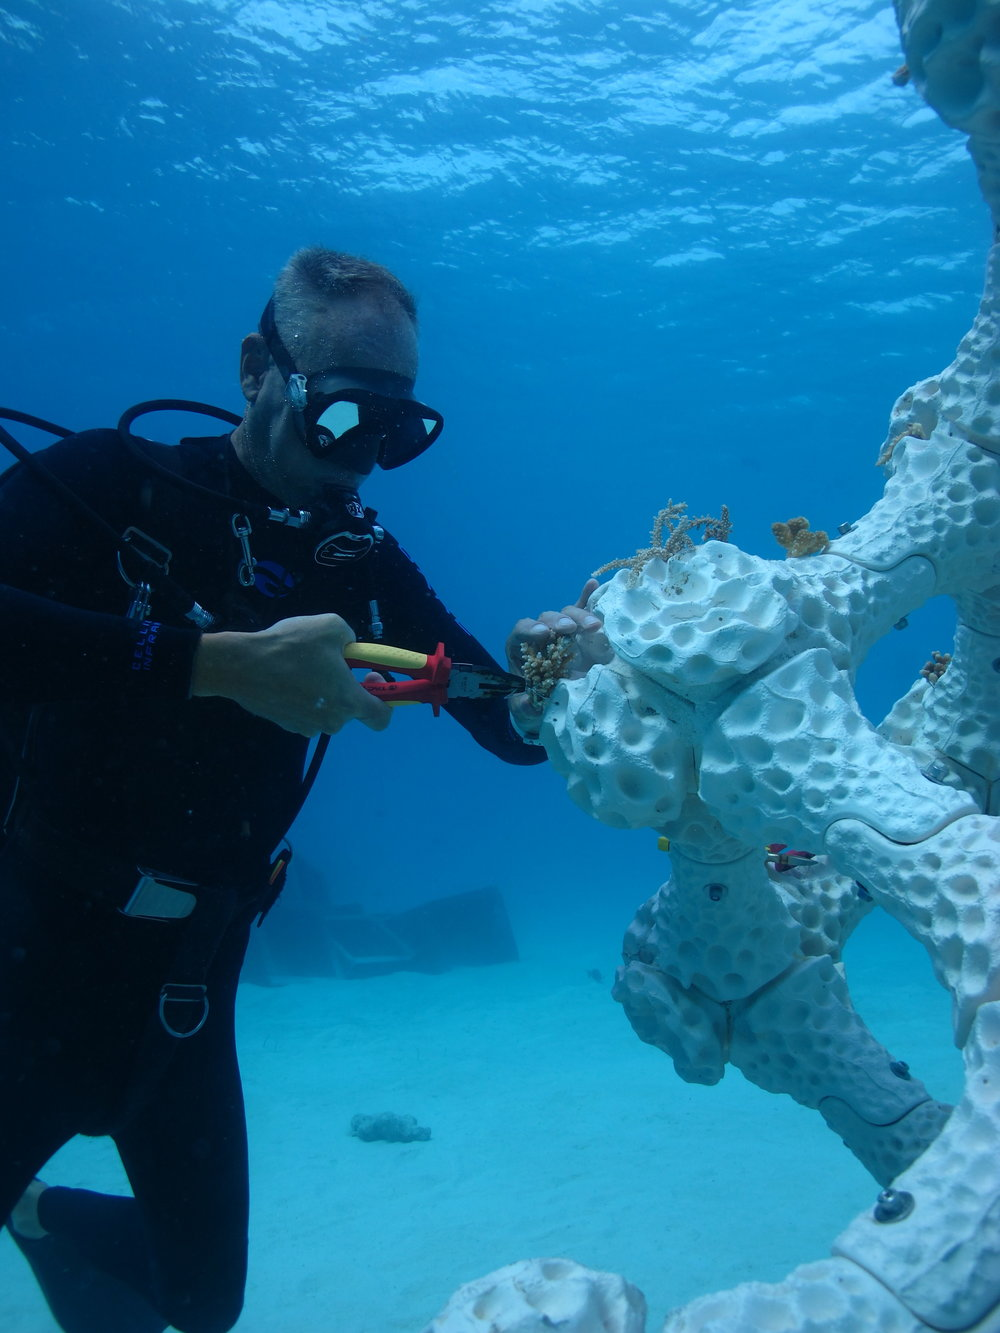 Diver Arjan Sierink attaching coral fragments to the MARS lattice for propagation. Photo by Alex Goad